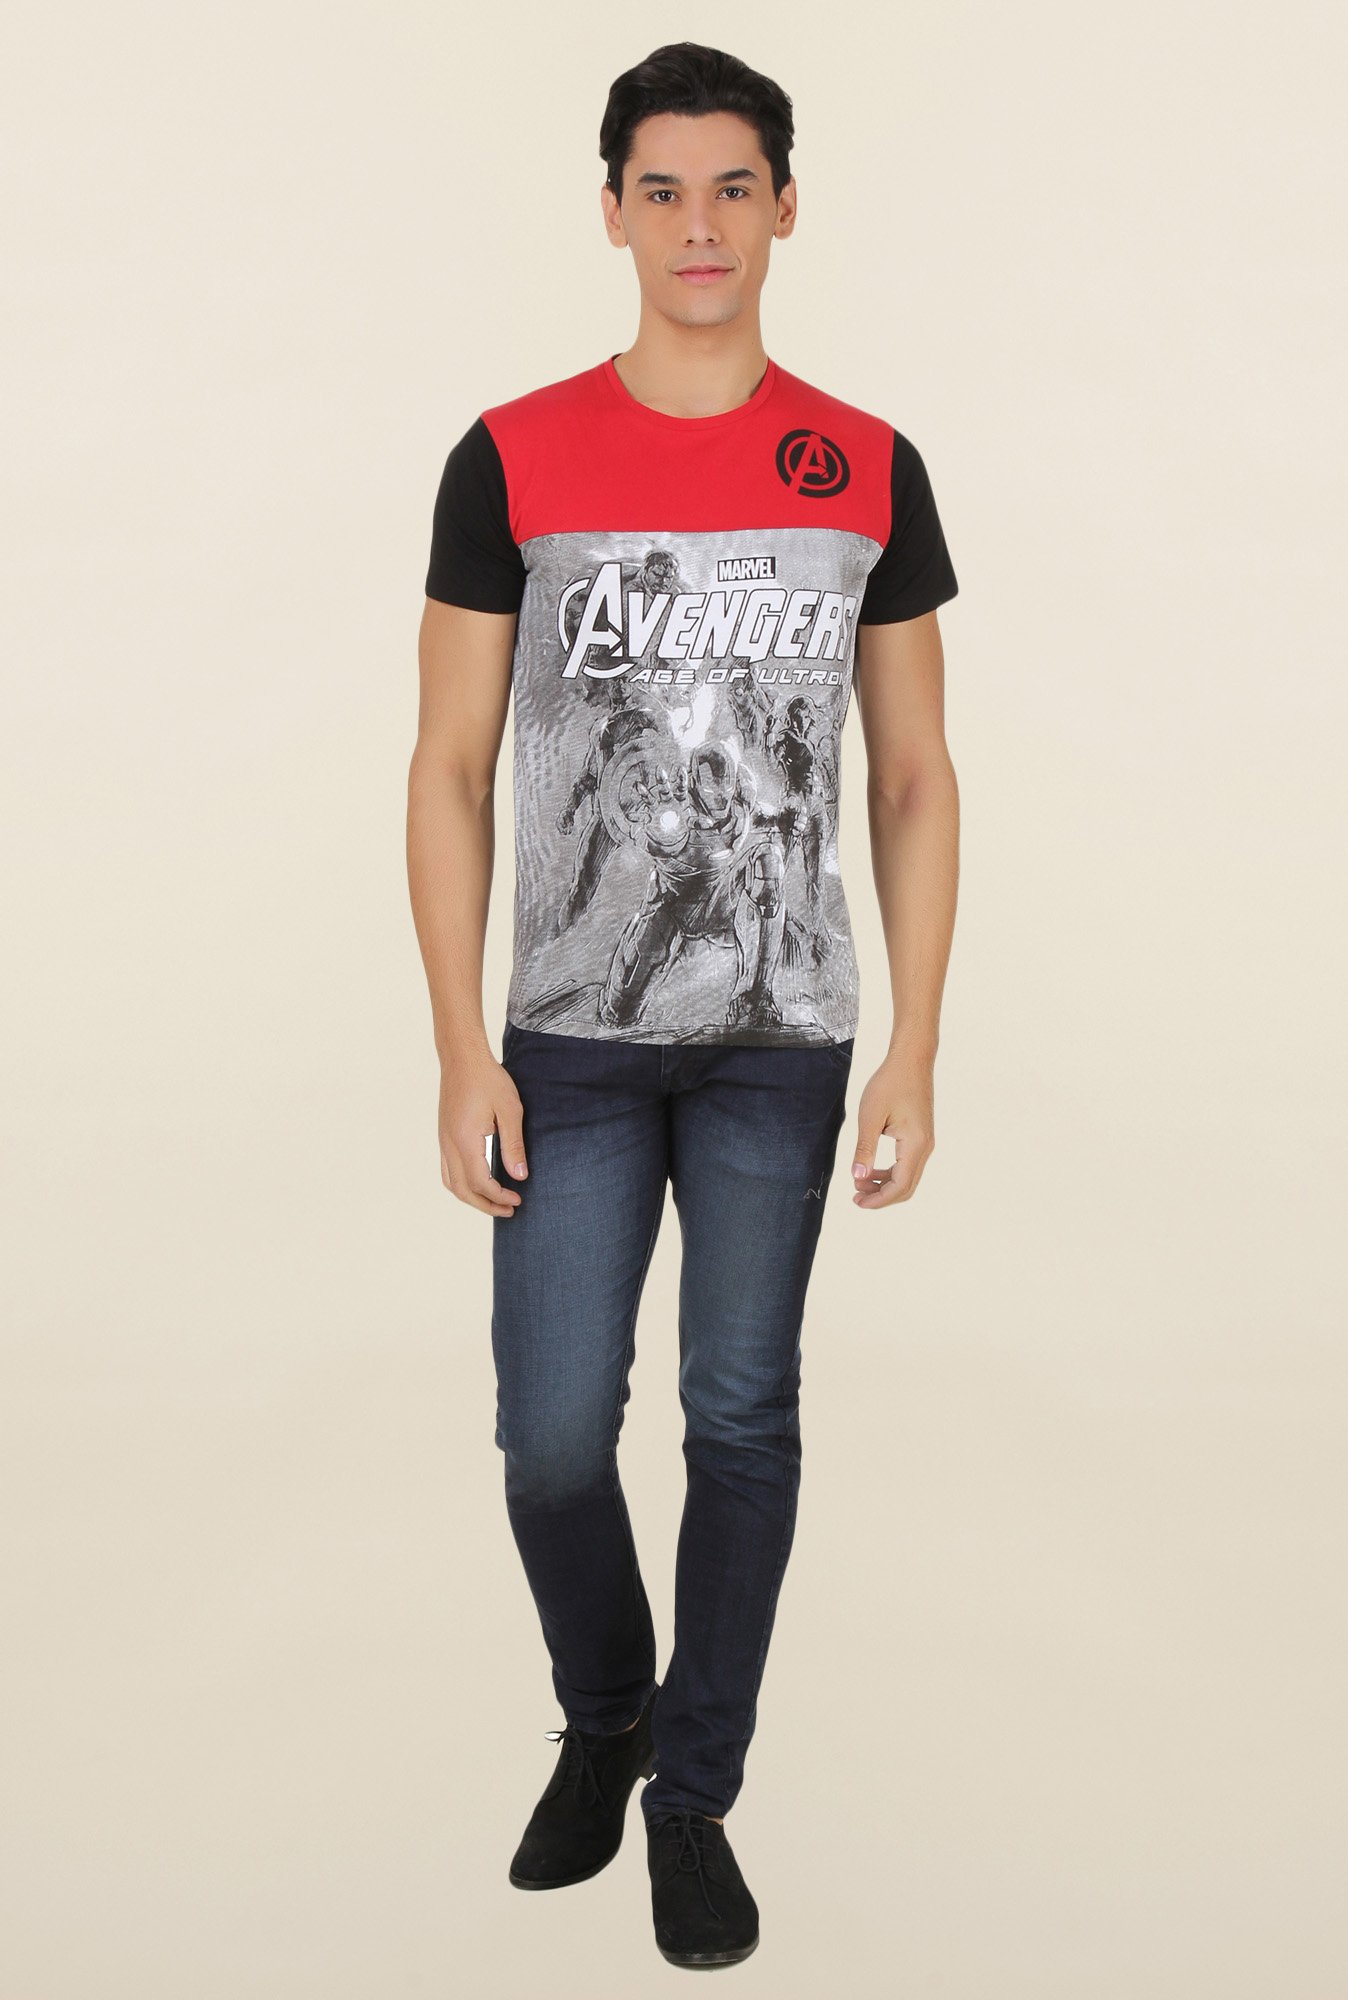 Avengers Black Printed T Shirt